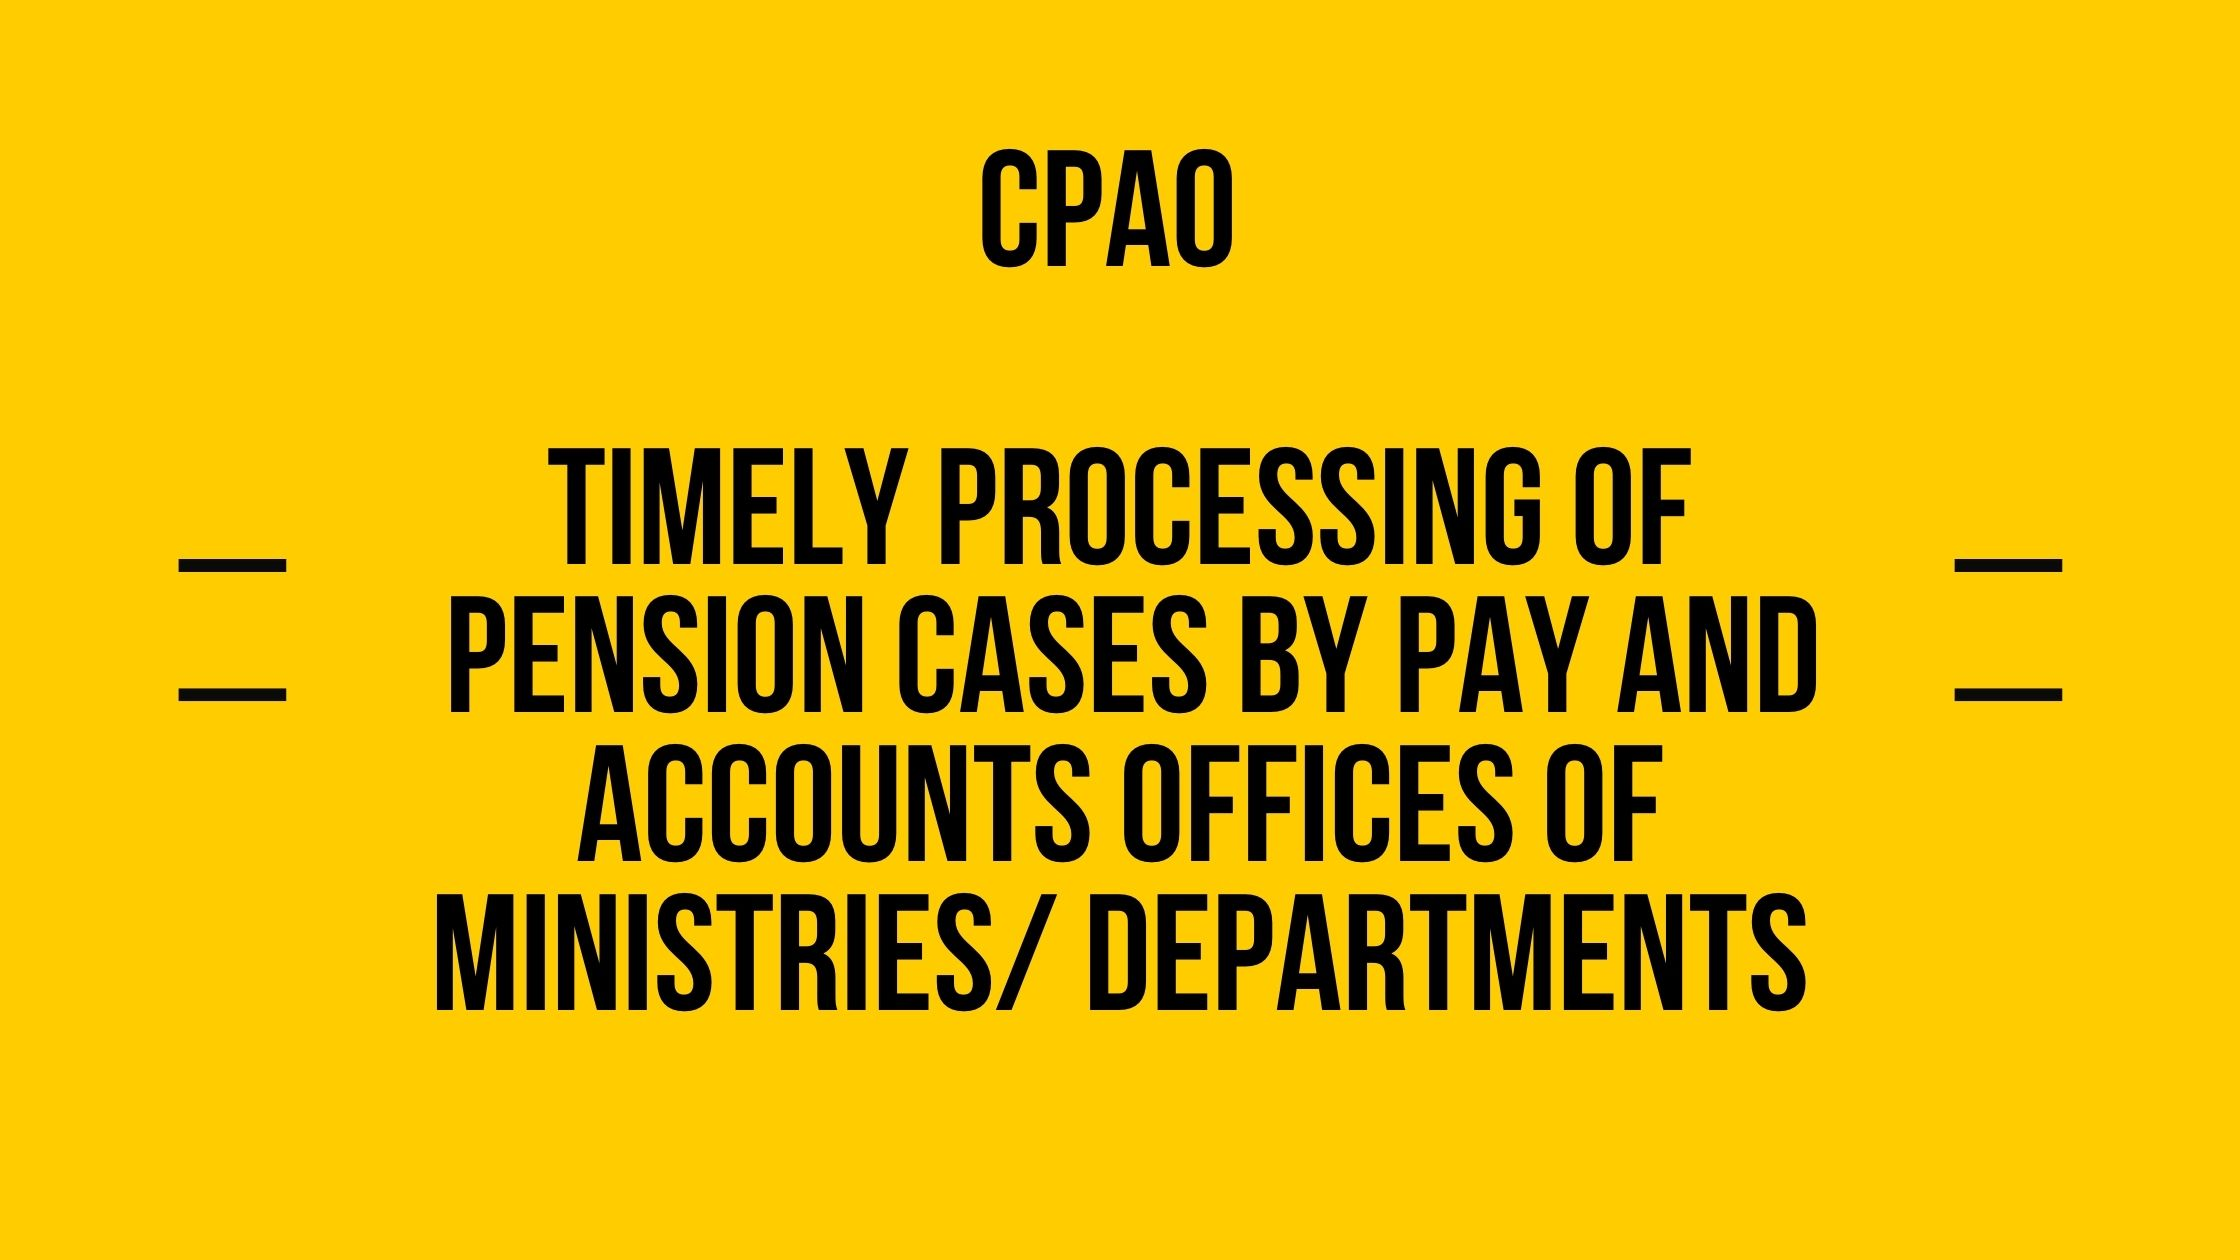 Timely processing of Pension cases